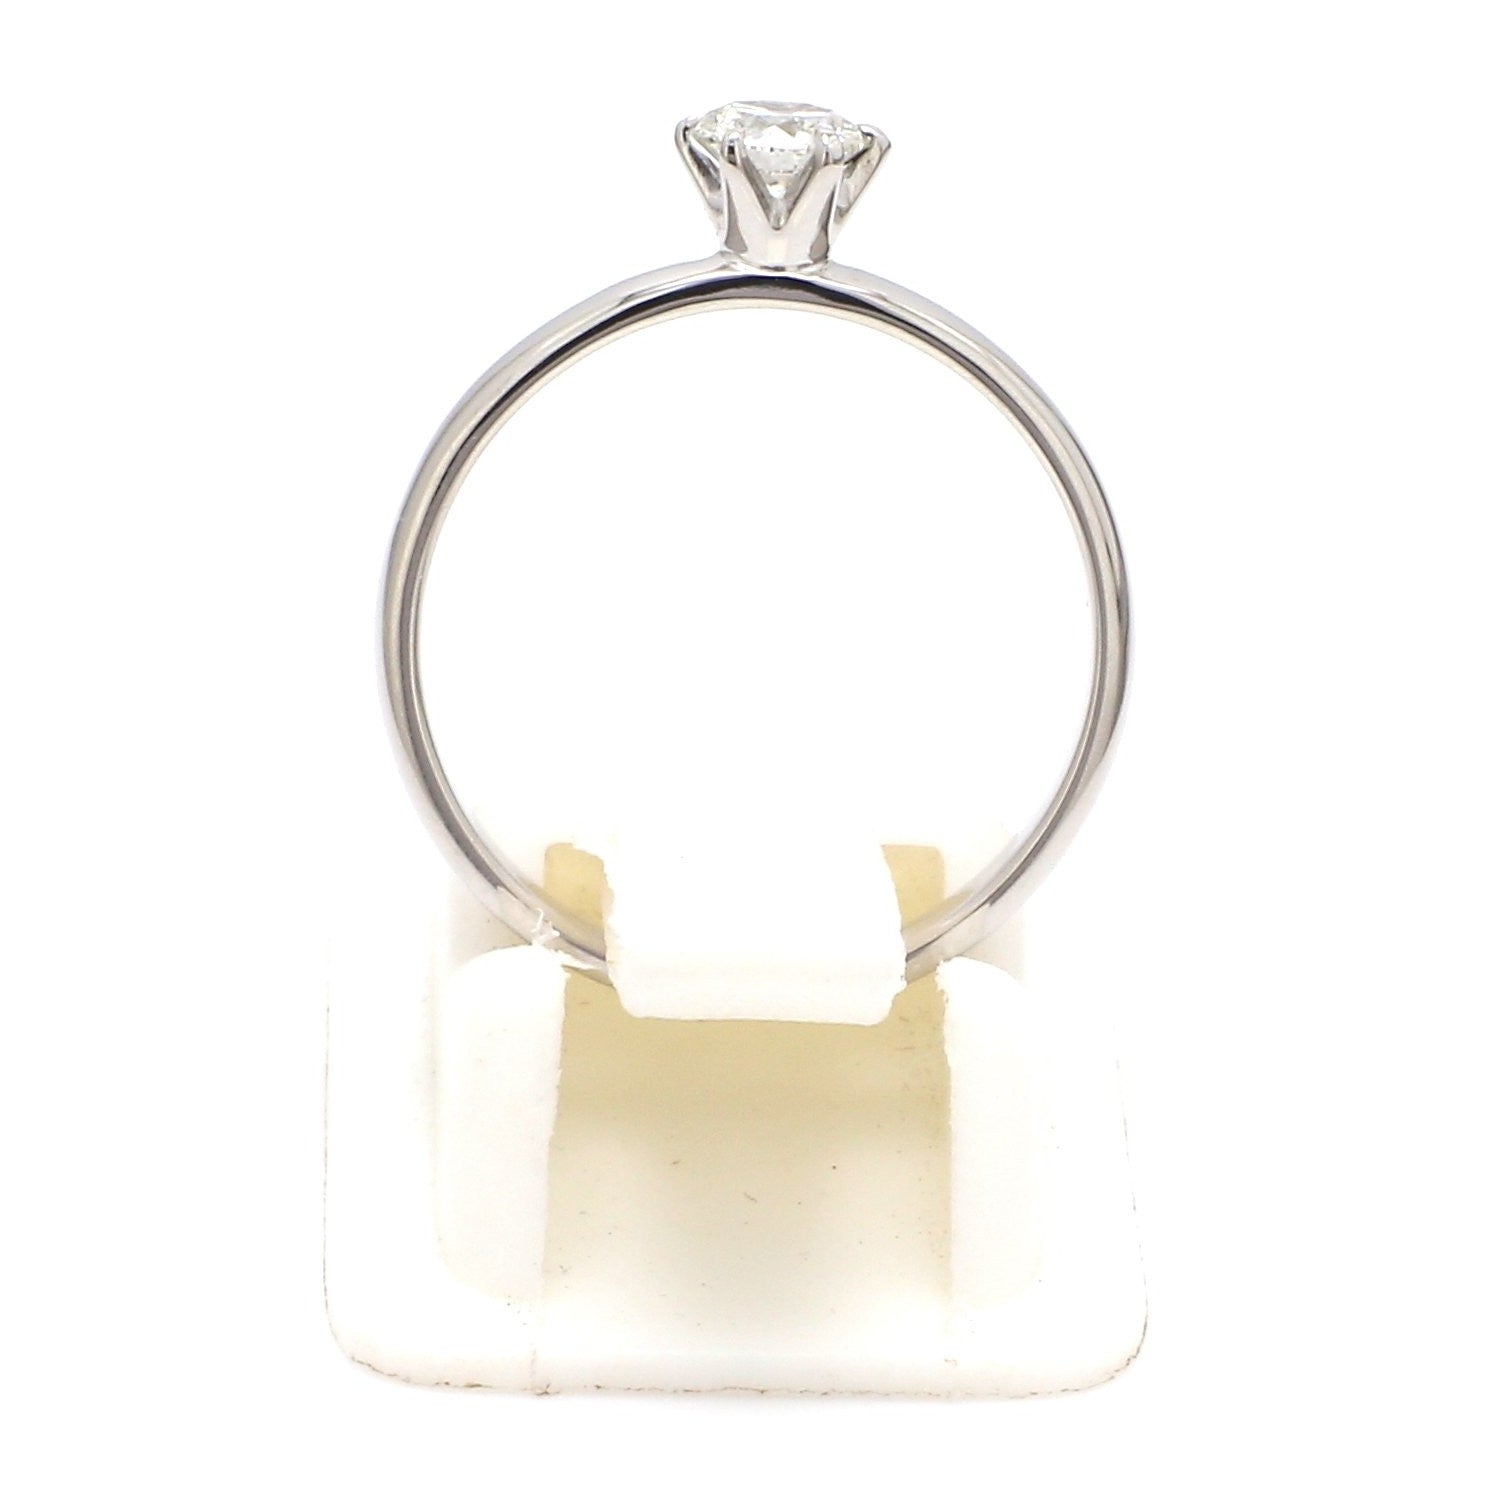 20 Pointer Classic 6 Prong Solitaire Ring made in Platinum SKU 0012-A